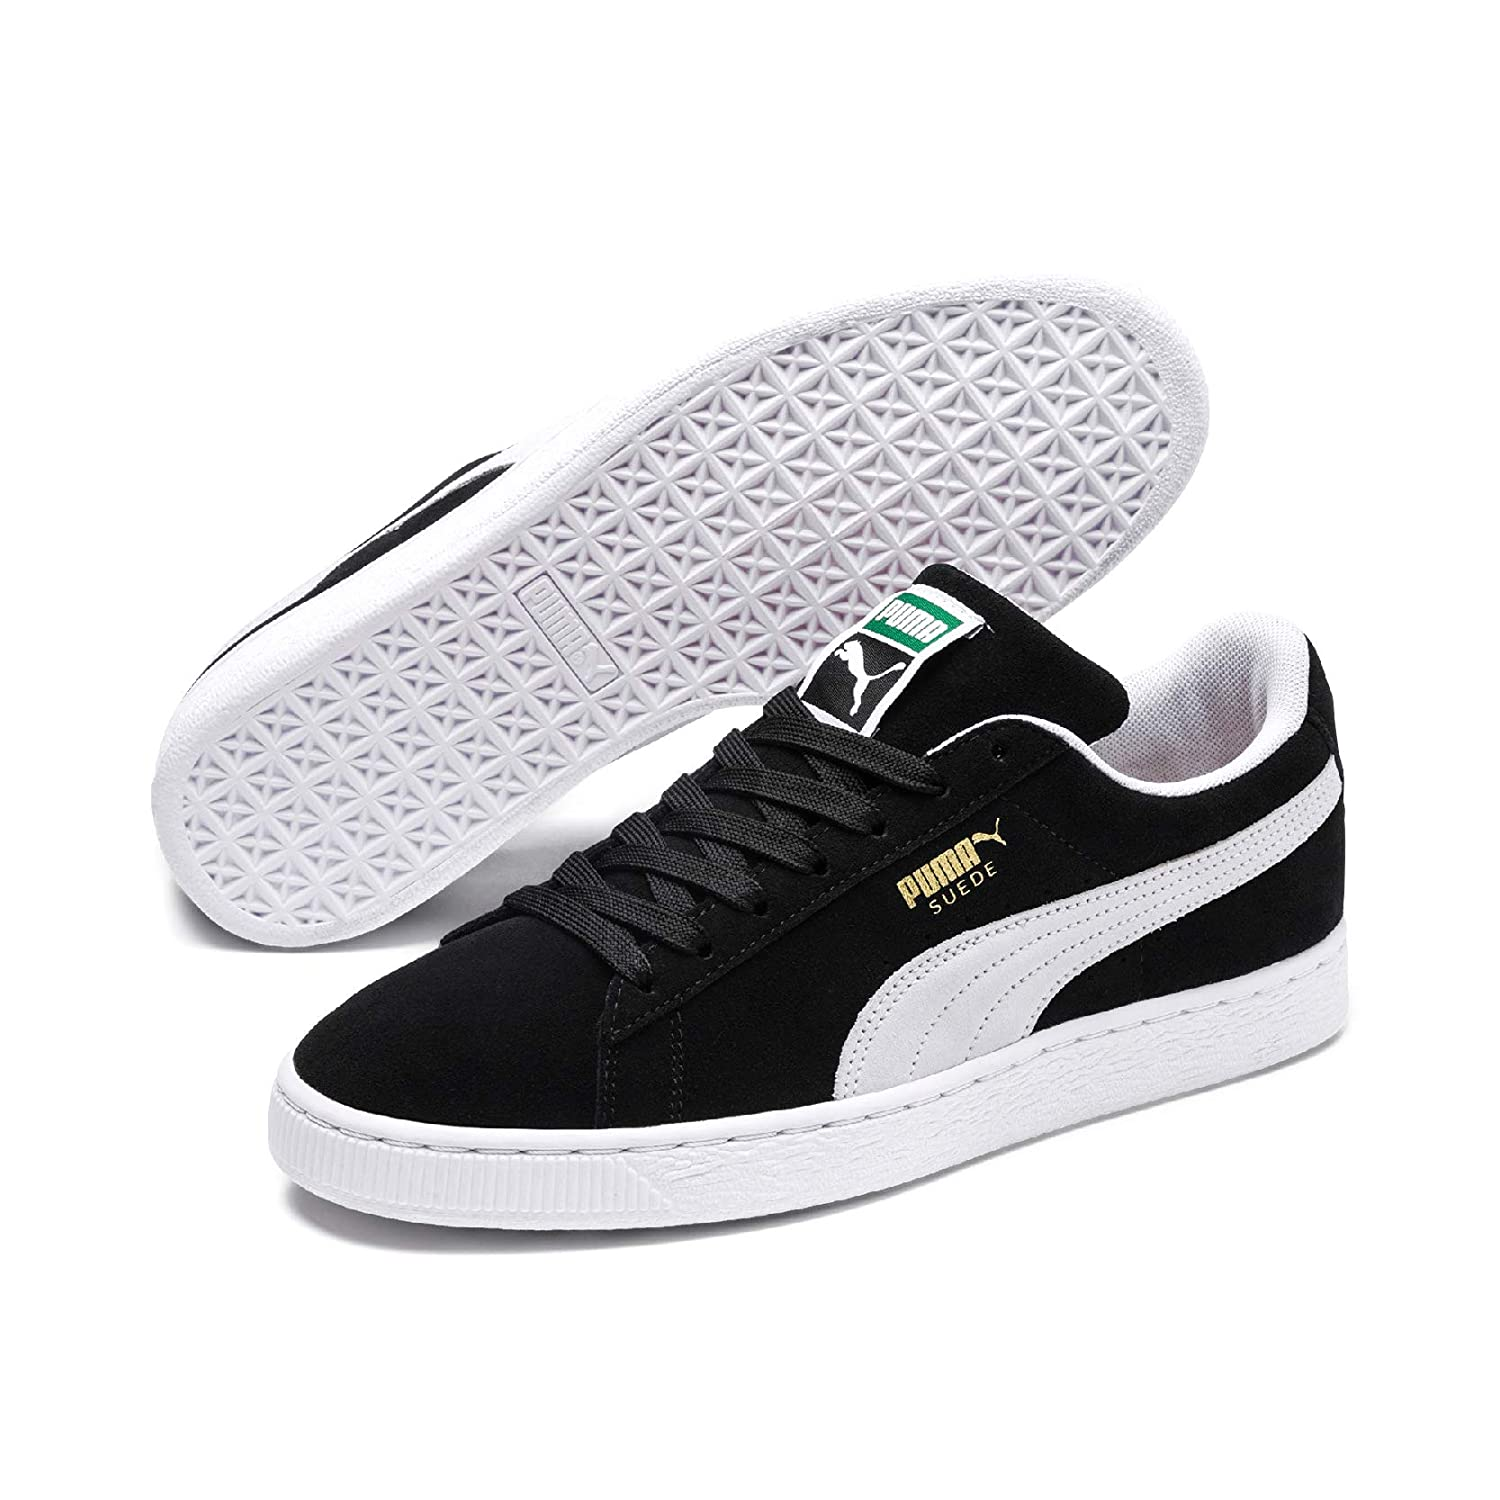 d787209059e Puma Suede Classic+, Unisex Adults Low-Top Trainers, Black (Black/White  03), 8 UK (42 EU): Amazon.co.uk: Shoes & Bags